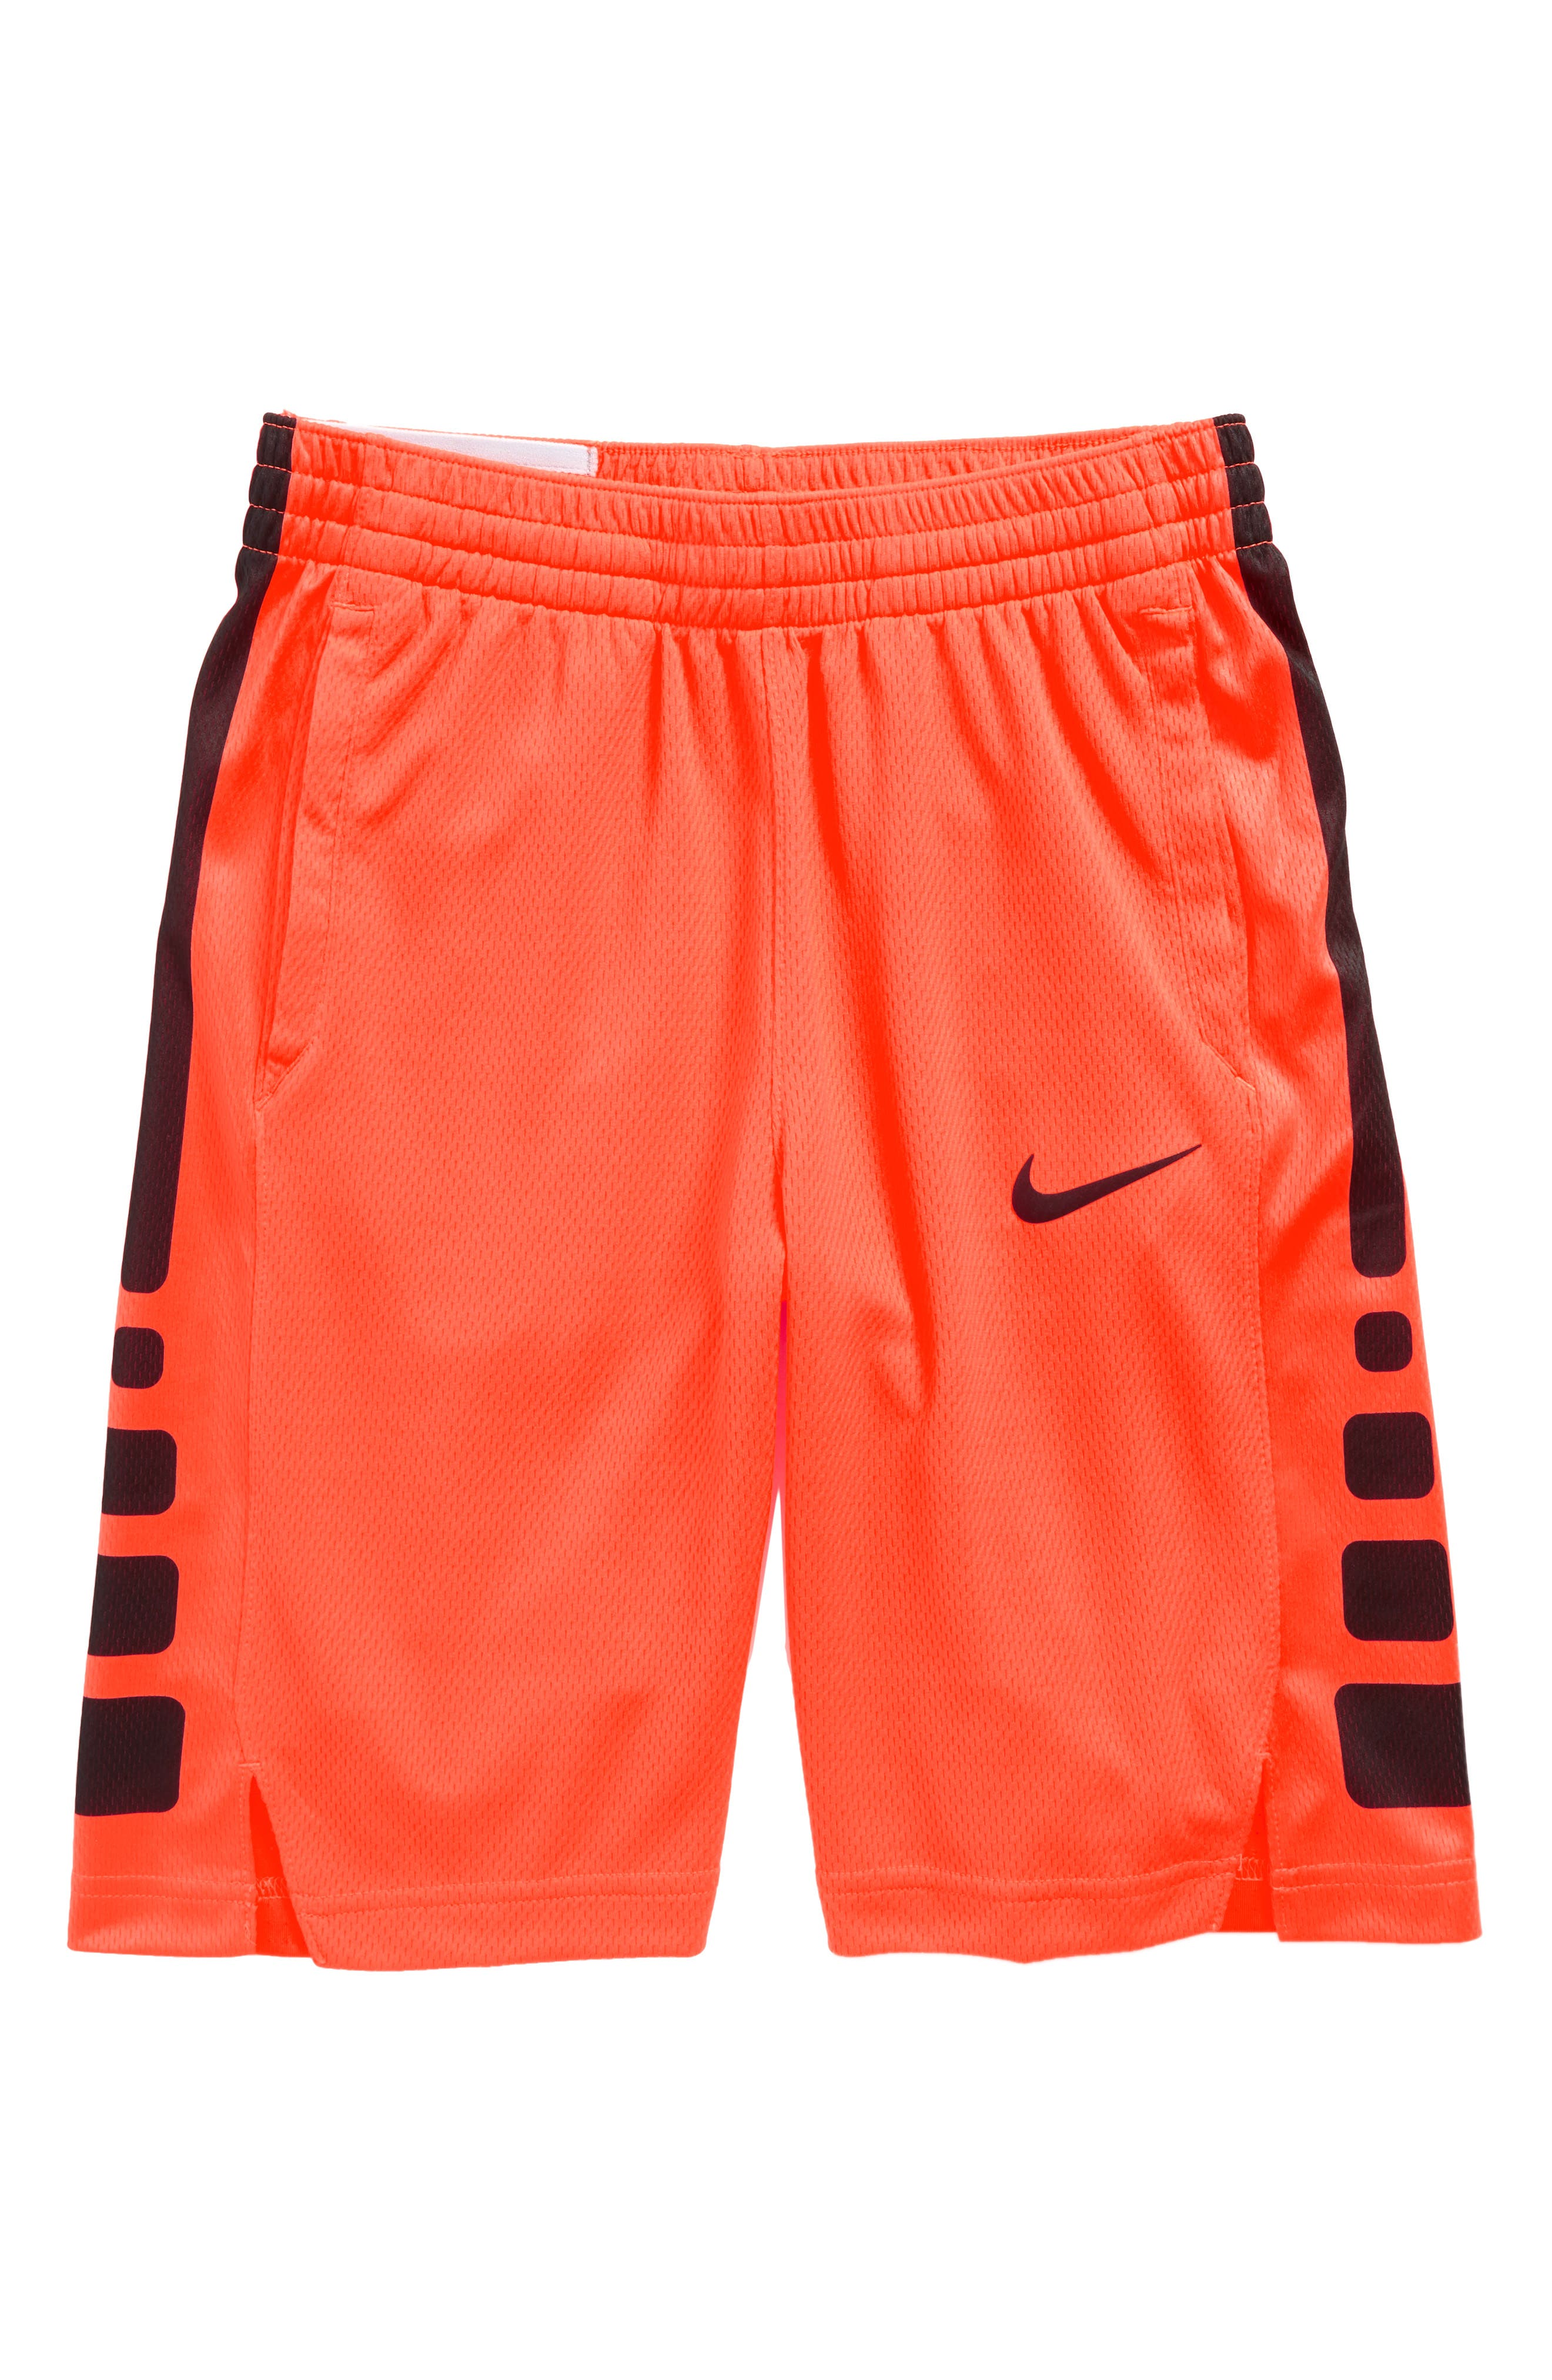 Dry Elite Basketball Shorts,                             Main thumbnail 55, color,